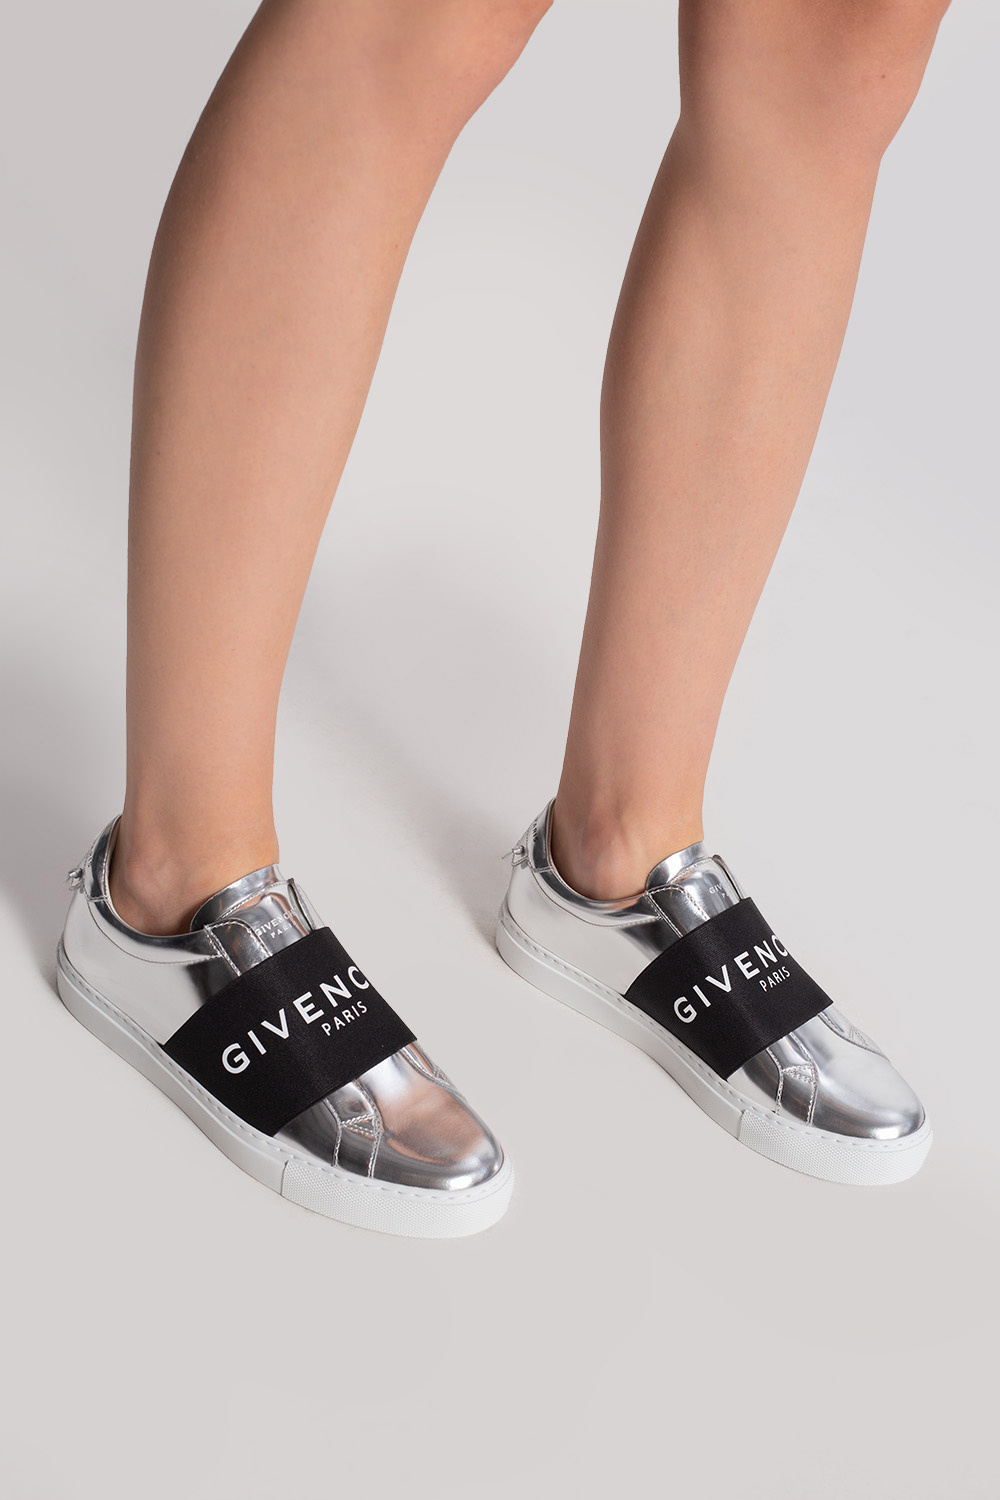 Givenchy 'Urban Street' sneakers